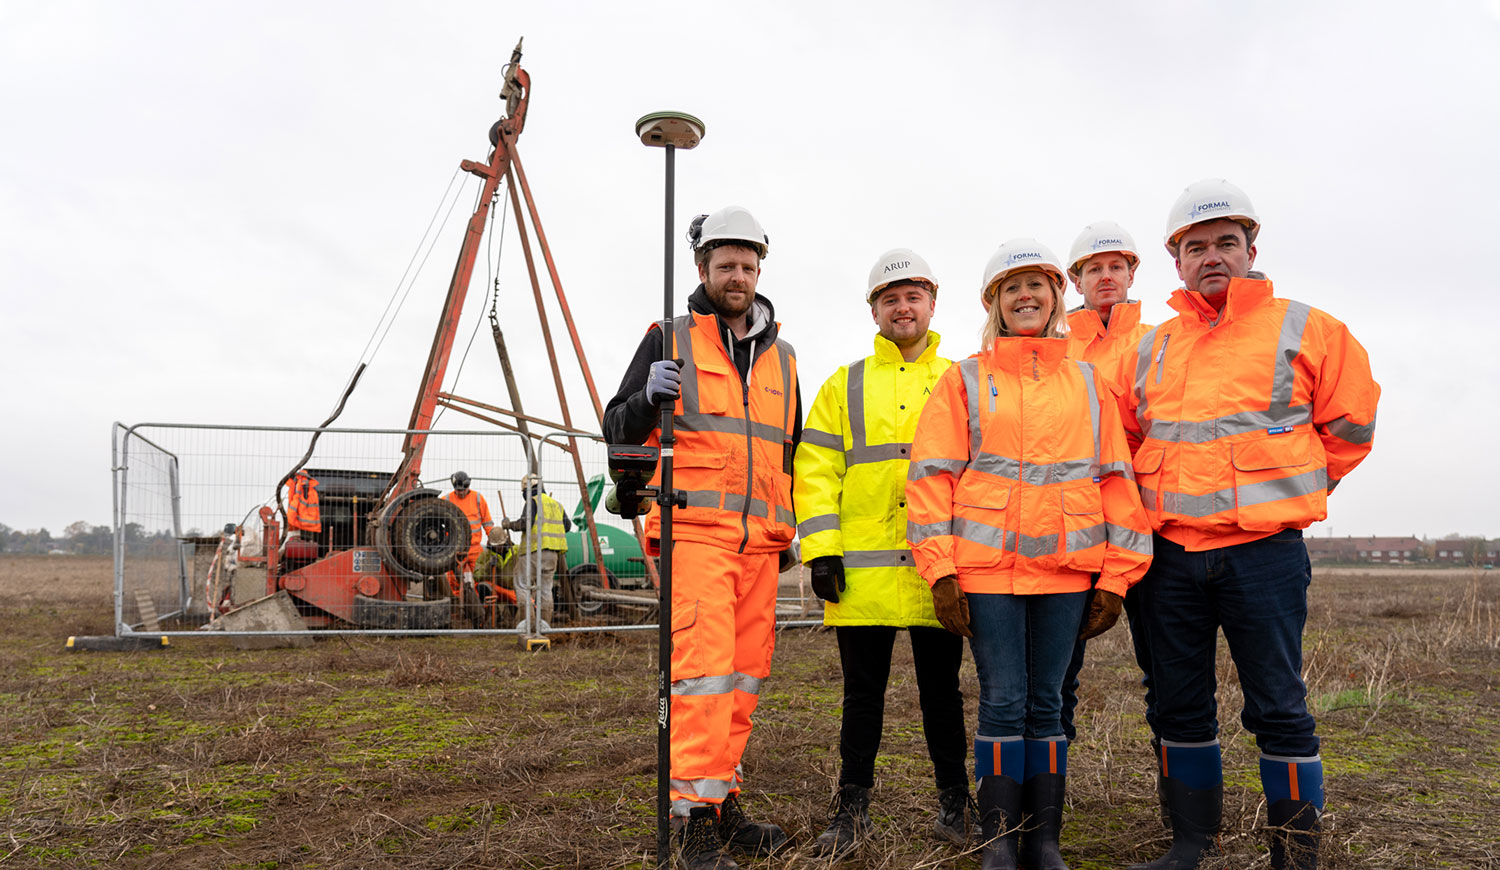 (l-r) Dave Hatton of Concept Consultants and Ben Weller of Arup, Julie Gates, Nicholas King and Richard Jones of Formal Investments at Rectory Farm